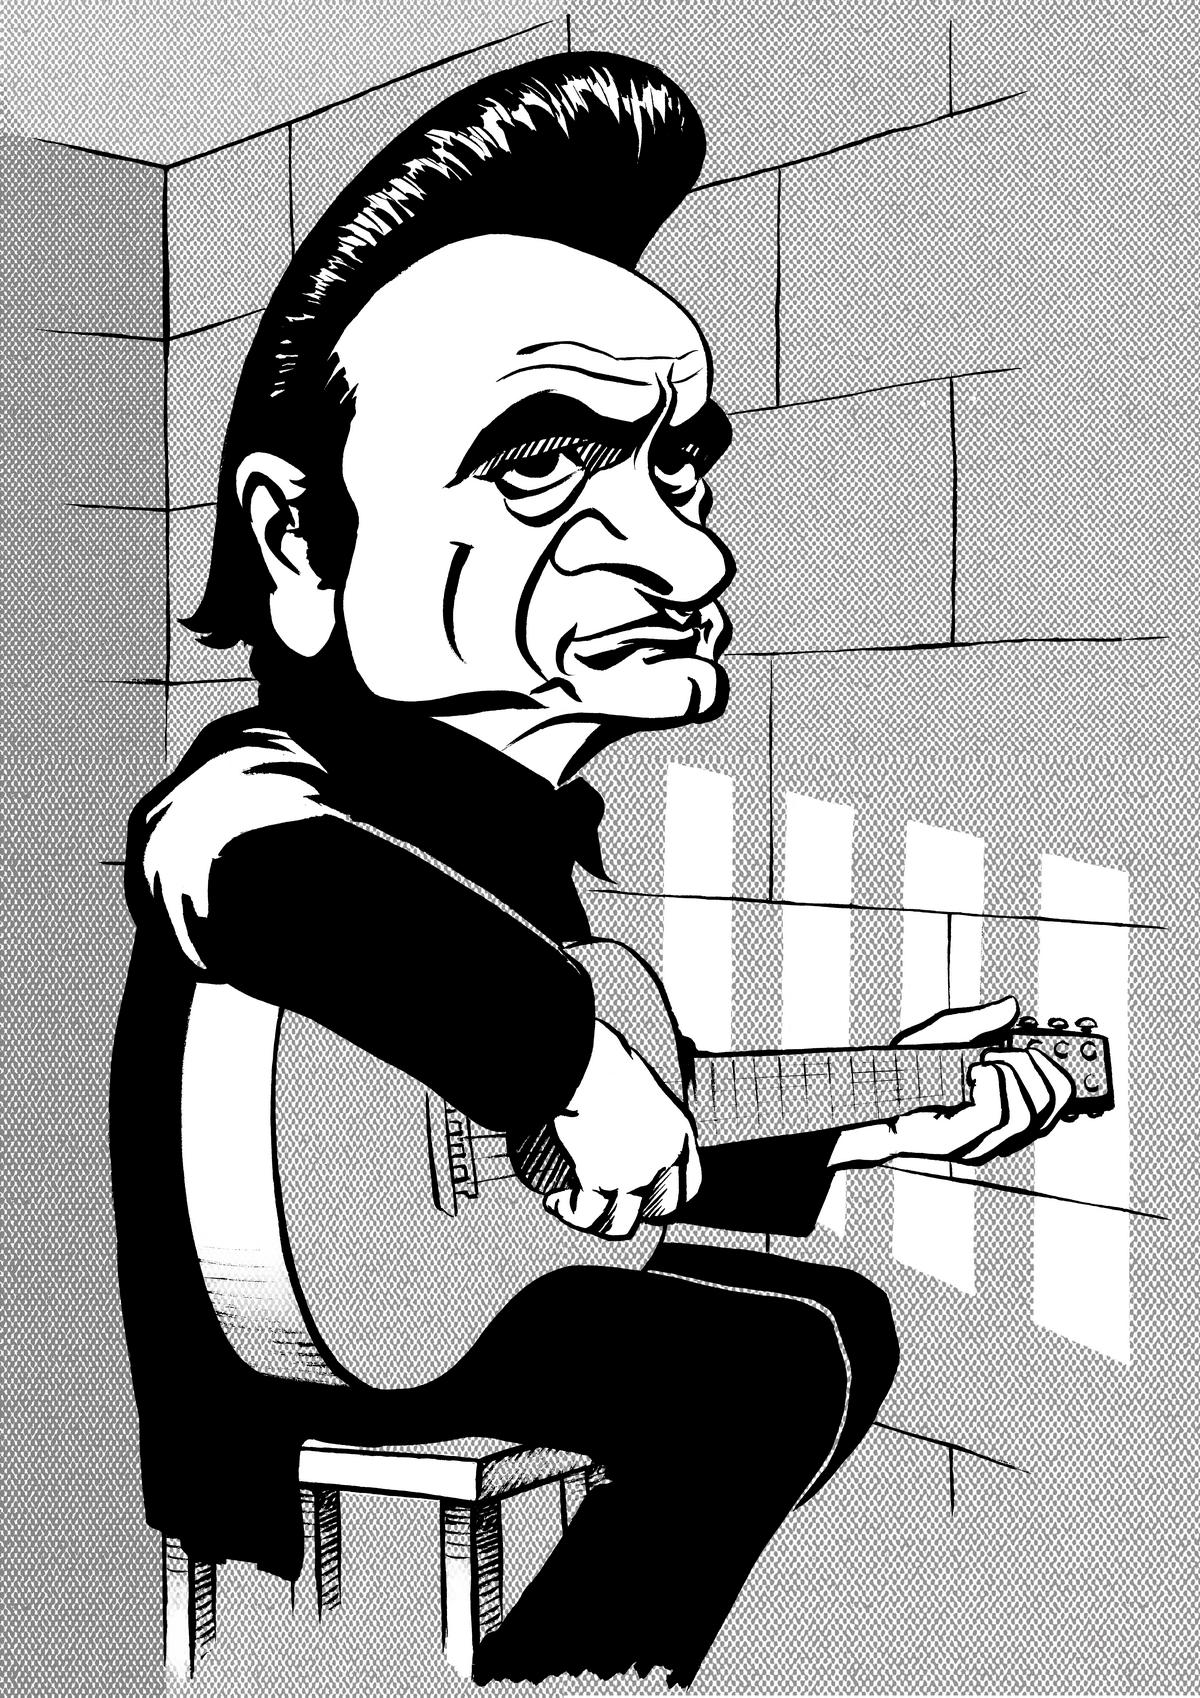 Johnny Cash caricature